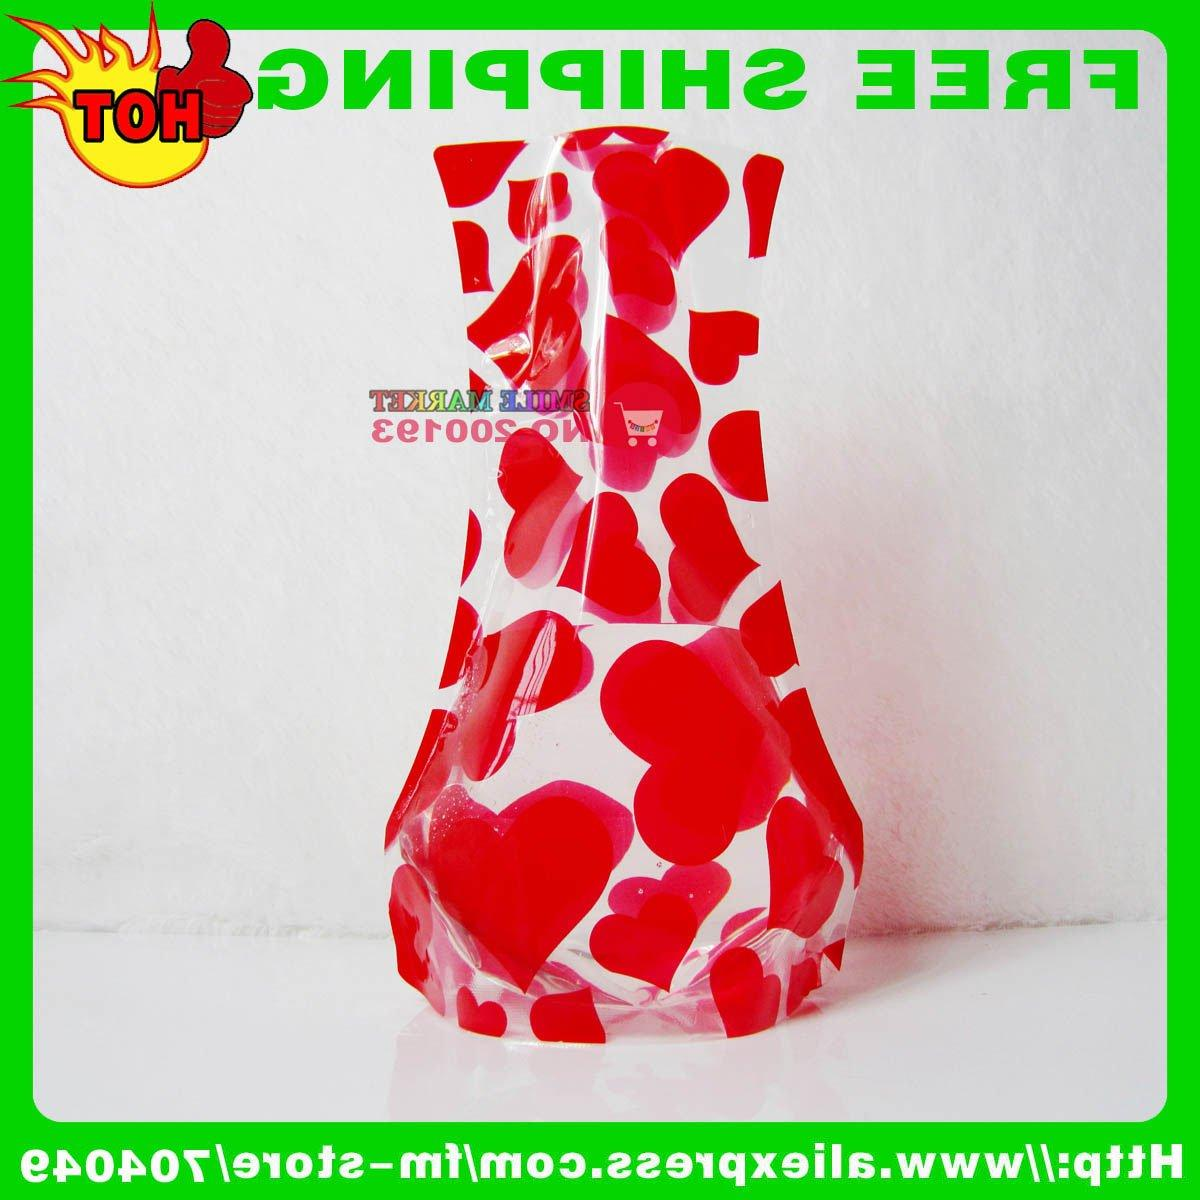 UNBREAKABLE RECYCLABLE FOLDABLE VASE INNOVATIVE WEDDING DECORATION 2011